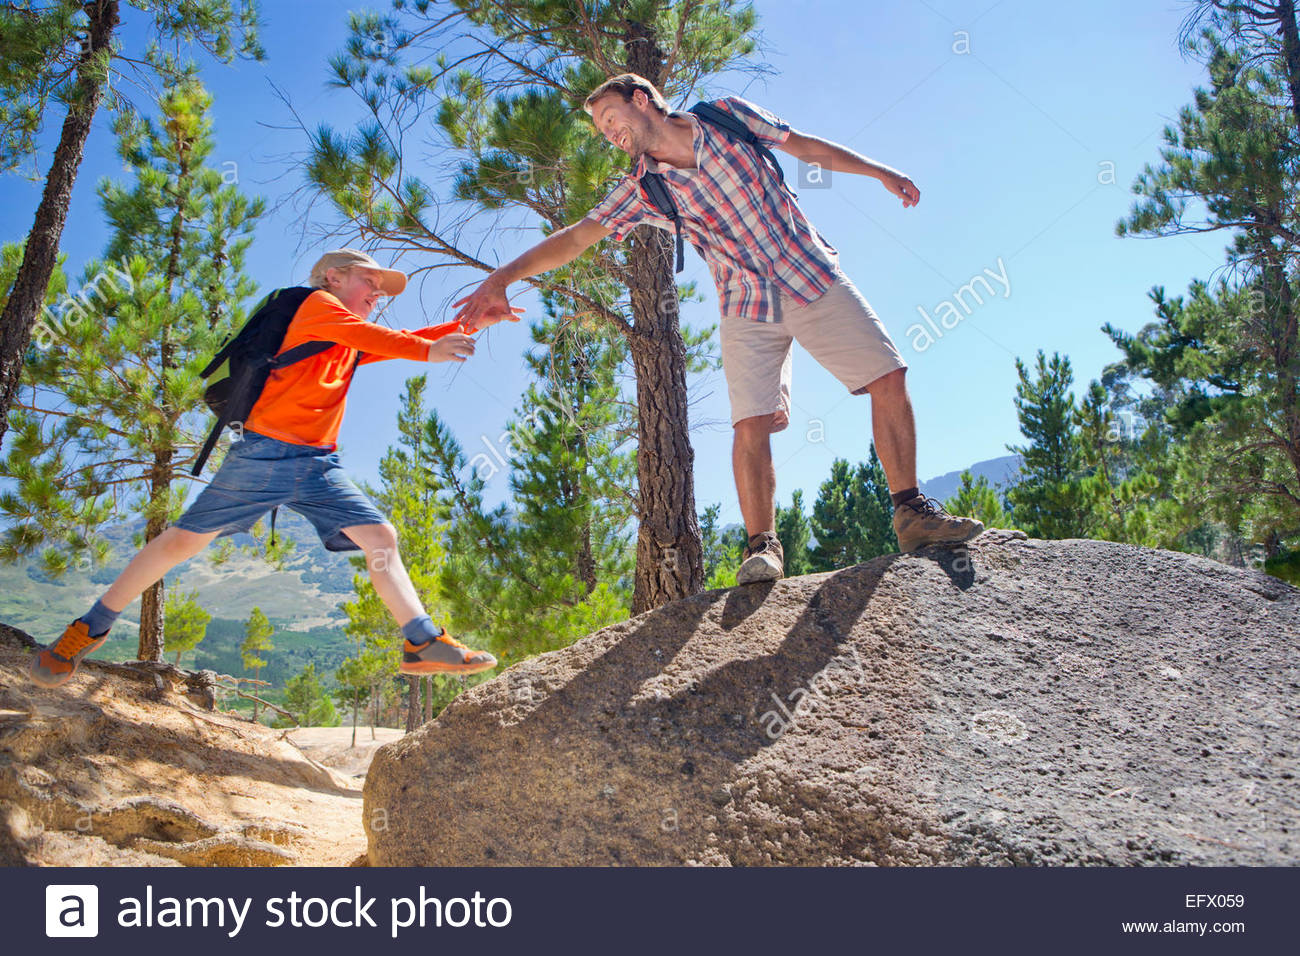 Father helping son climb on mountain path - Stock Image